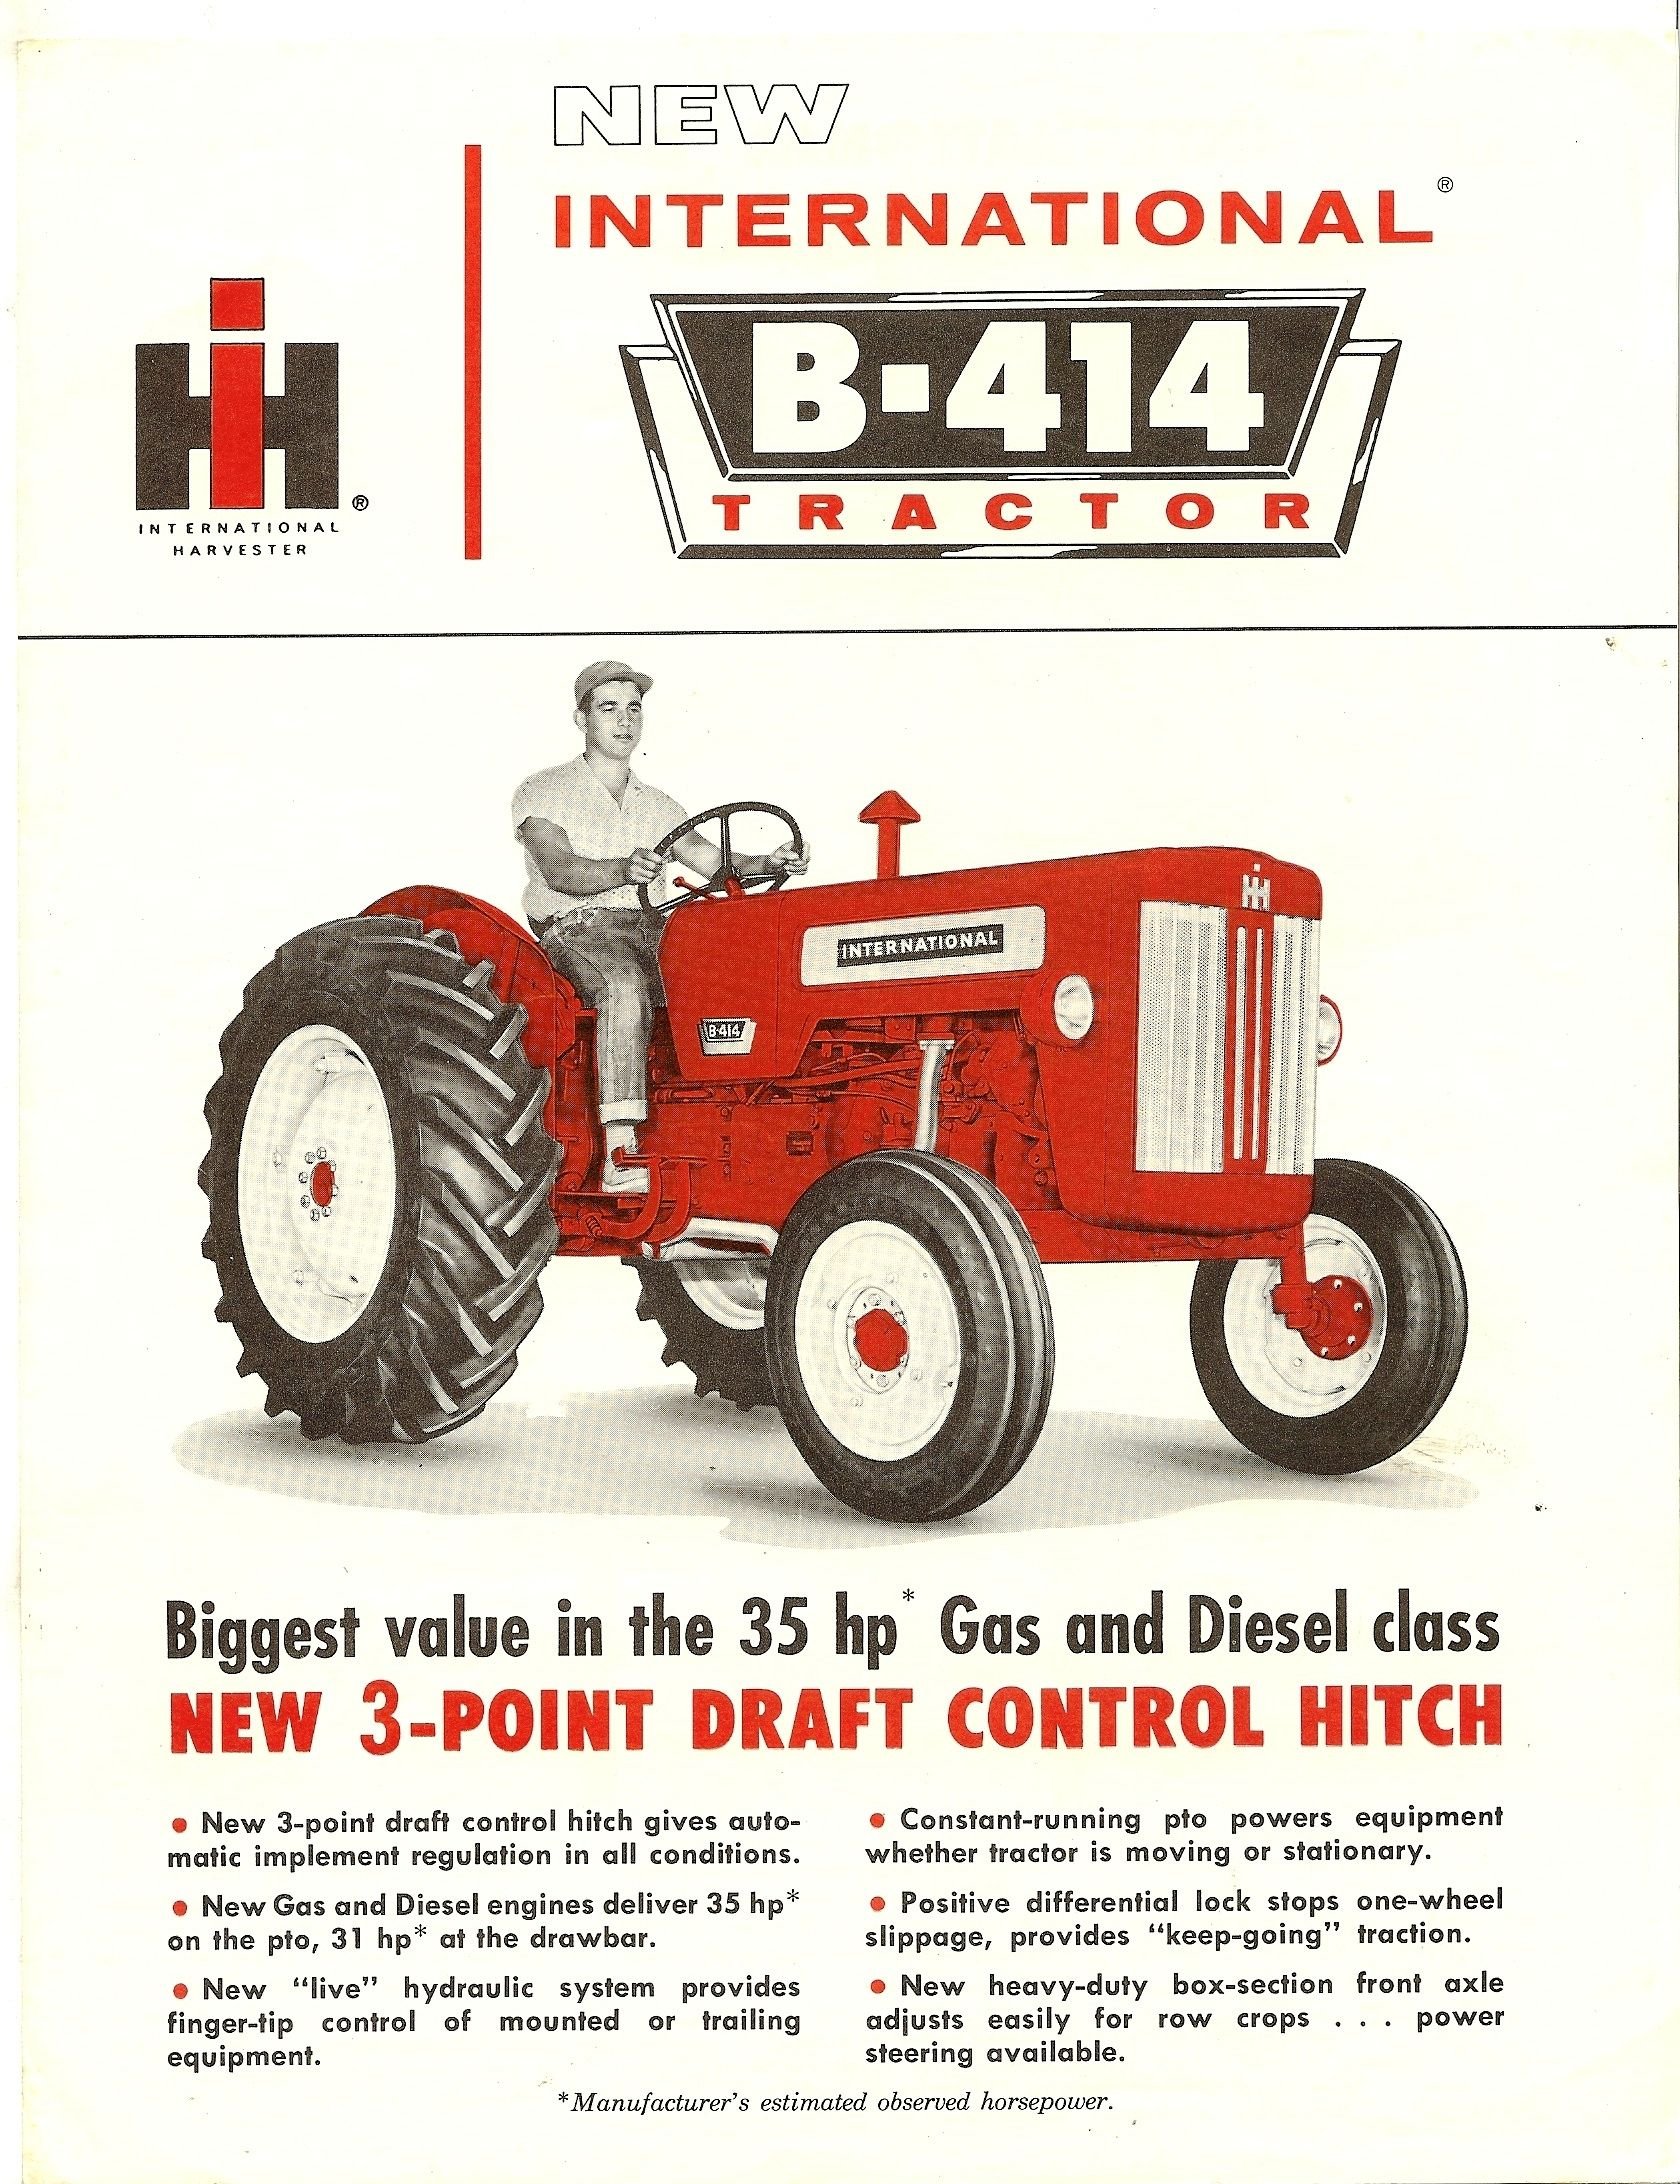 1962 ih b 414 utility tractor international harvester advertising rh pinterest com International B414 Tractor Parts International B414 vs Mahindra